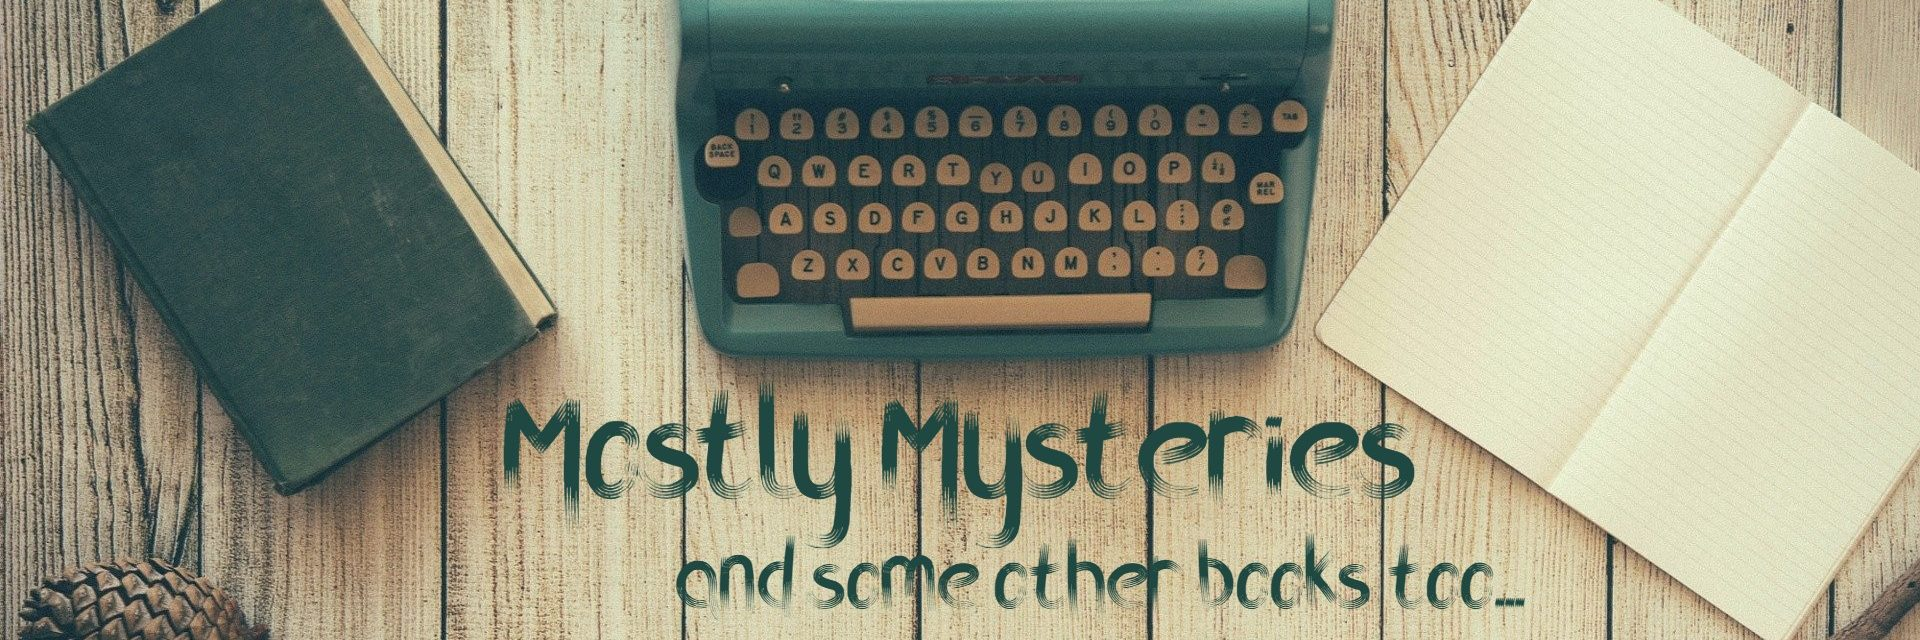 Mostly Mysteries